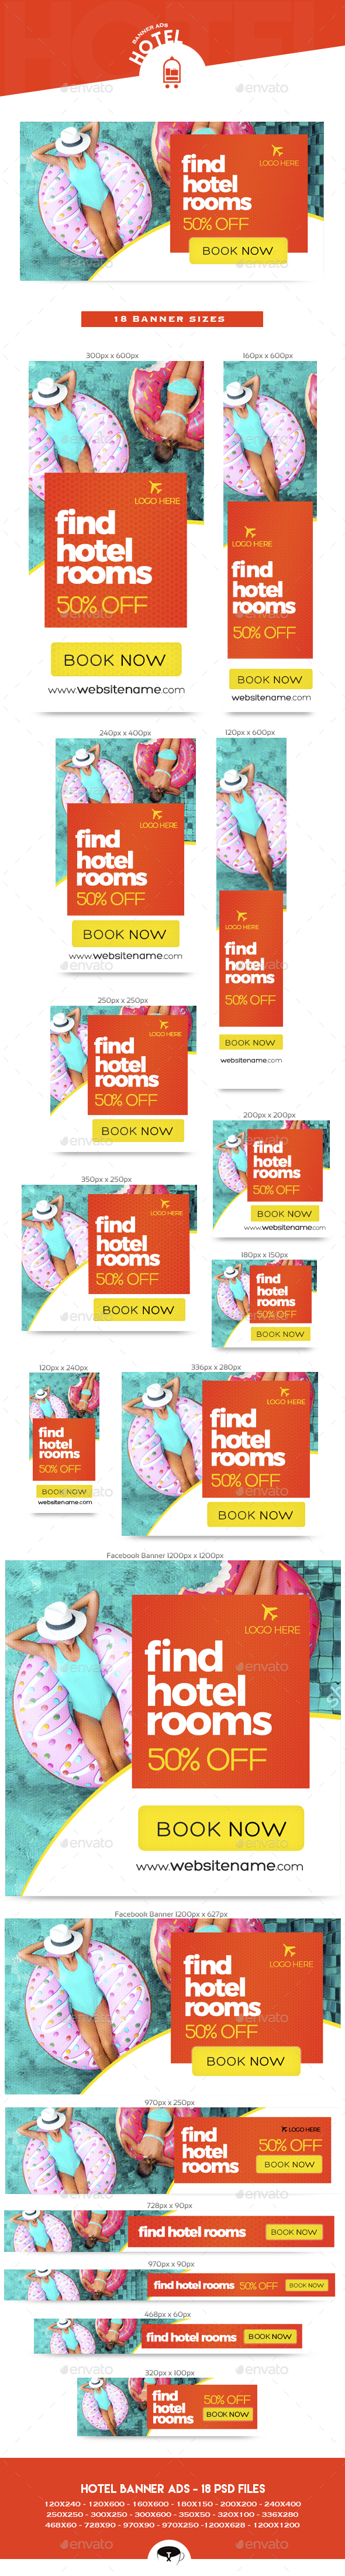 Hotel Banner Ads - Banners & Ads Web Elements